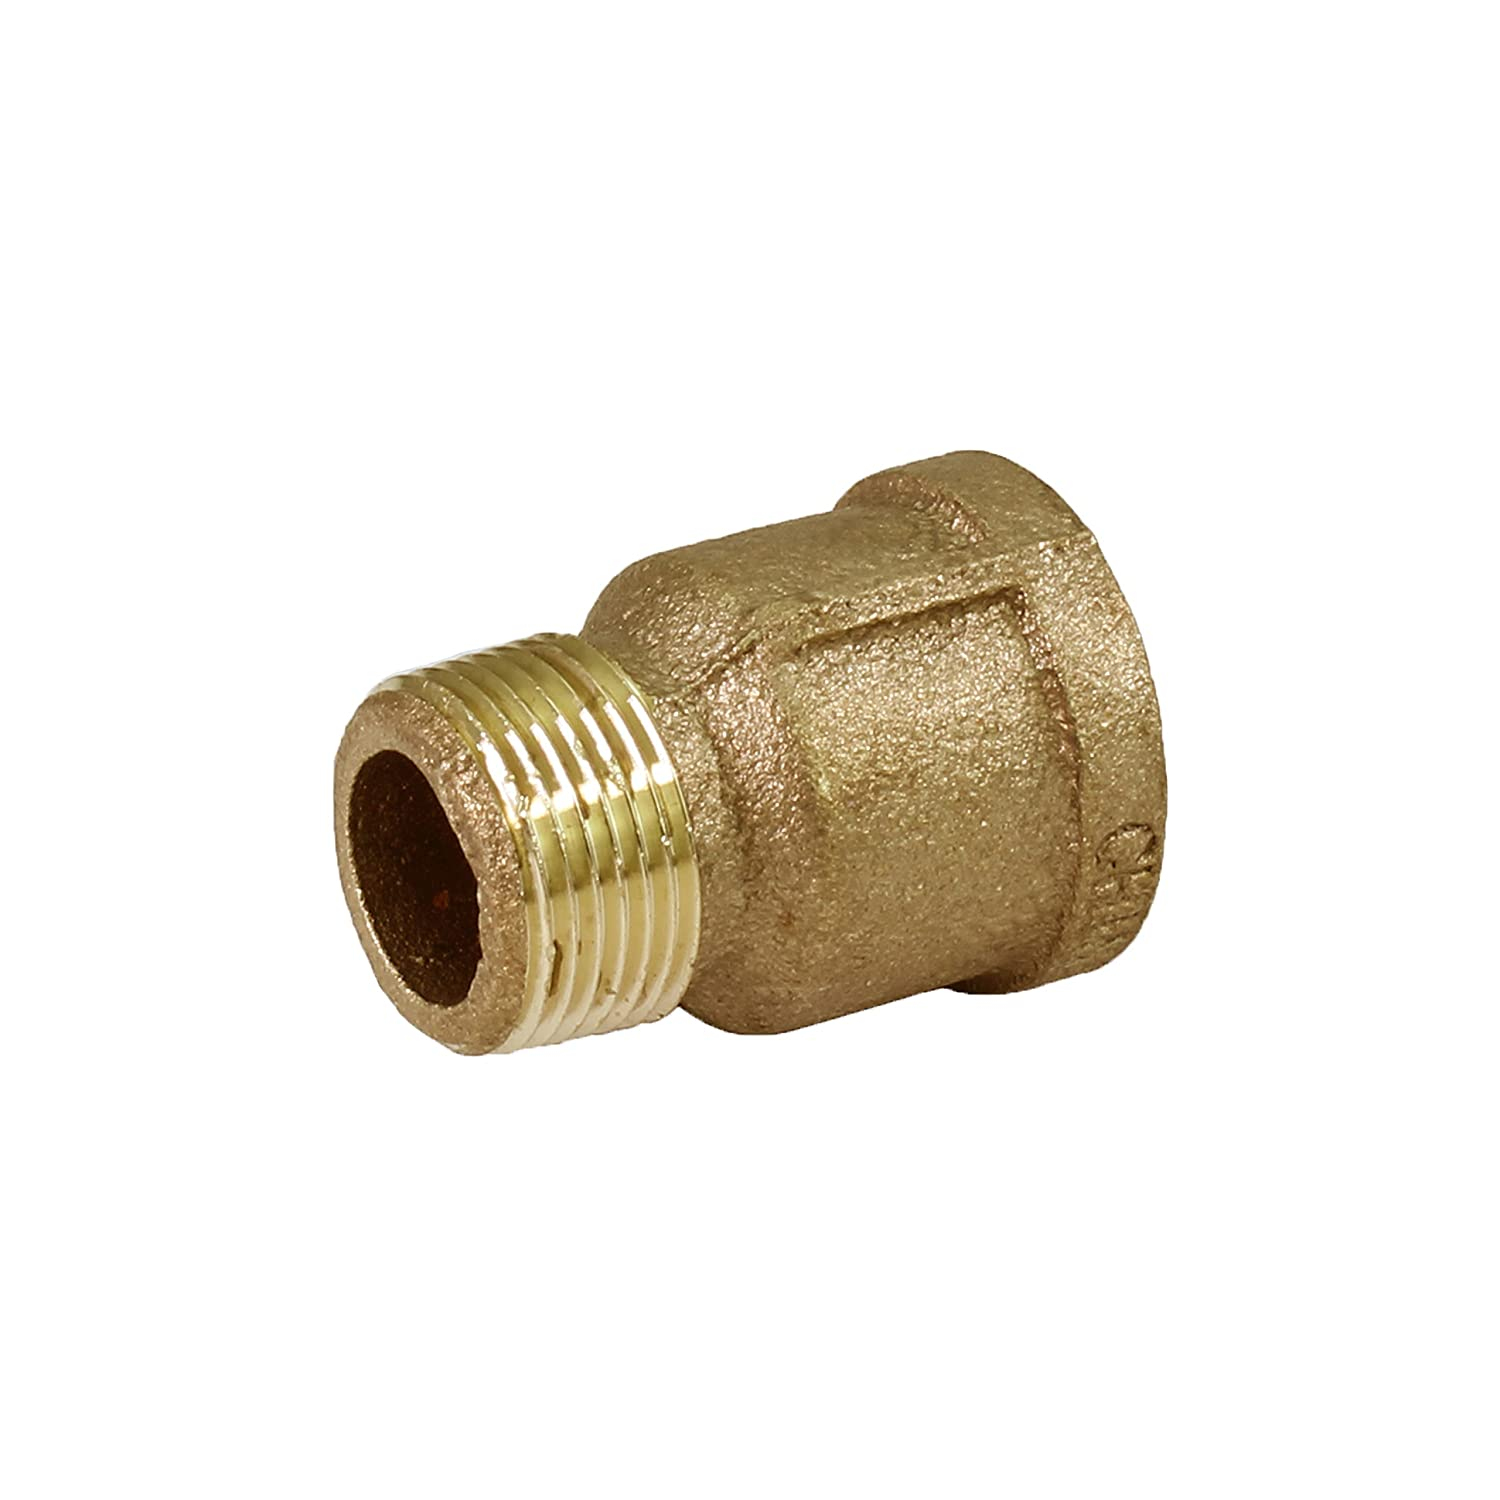 Everflow BREP0034-NL 3//4-Inch Male National Pipe Taper Brass Extension 125 LB Applications Piece Higher Corrosion Resistance Lead Free Economical and Easy to Install Everflow Supplies Brass Construction